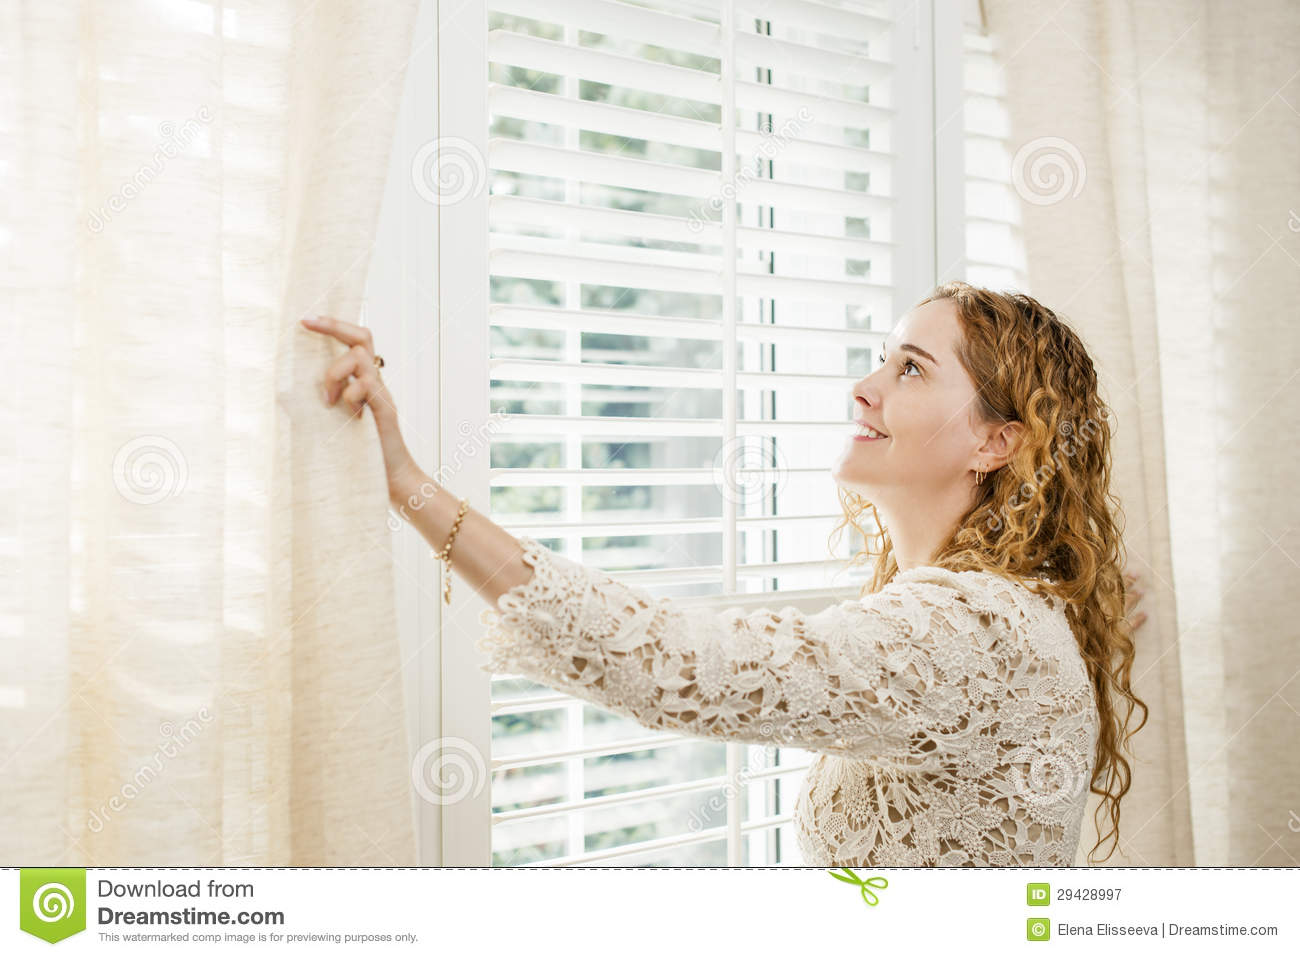 Download Smiling Woman Looking Out Window Stock Image - Image of curtain, california: 29428997